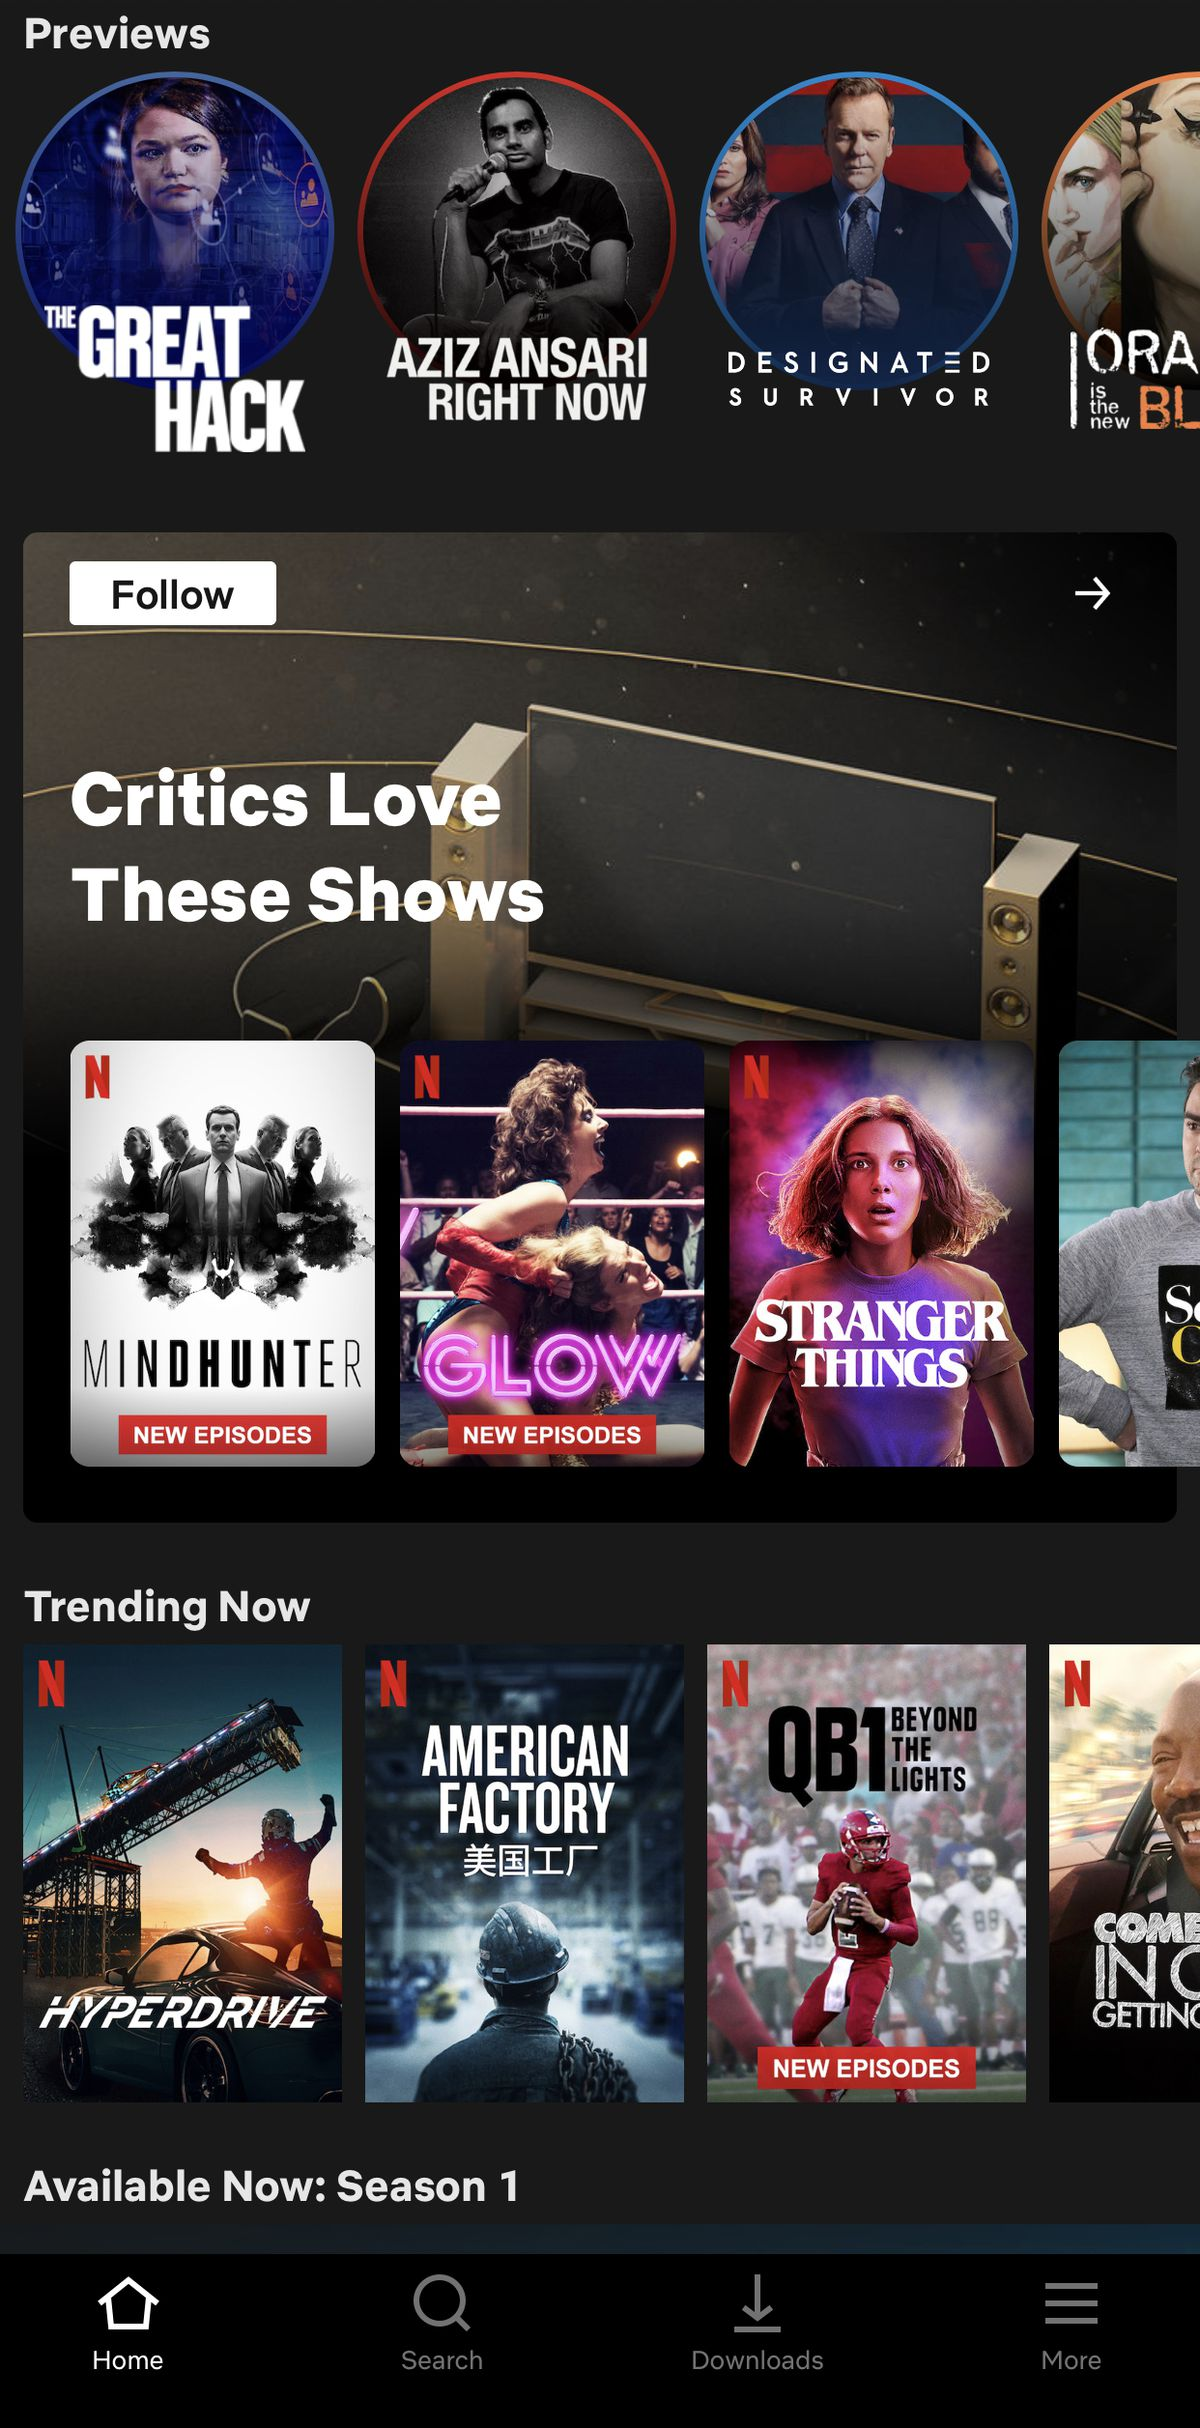 IMG 3804 - Netflix tests Collections that are curated by humans instead of algorithms